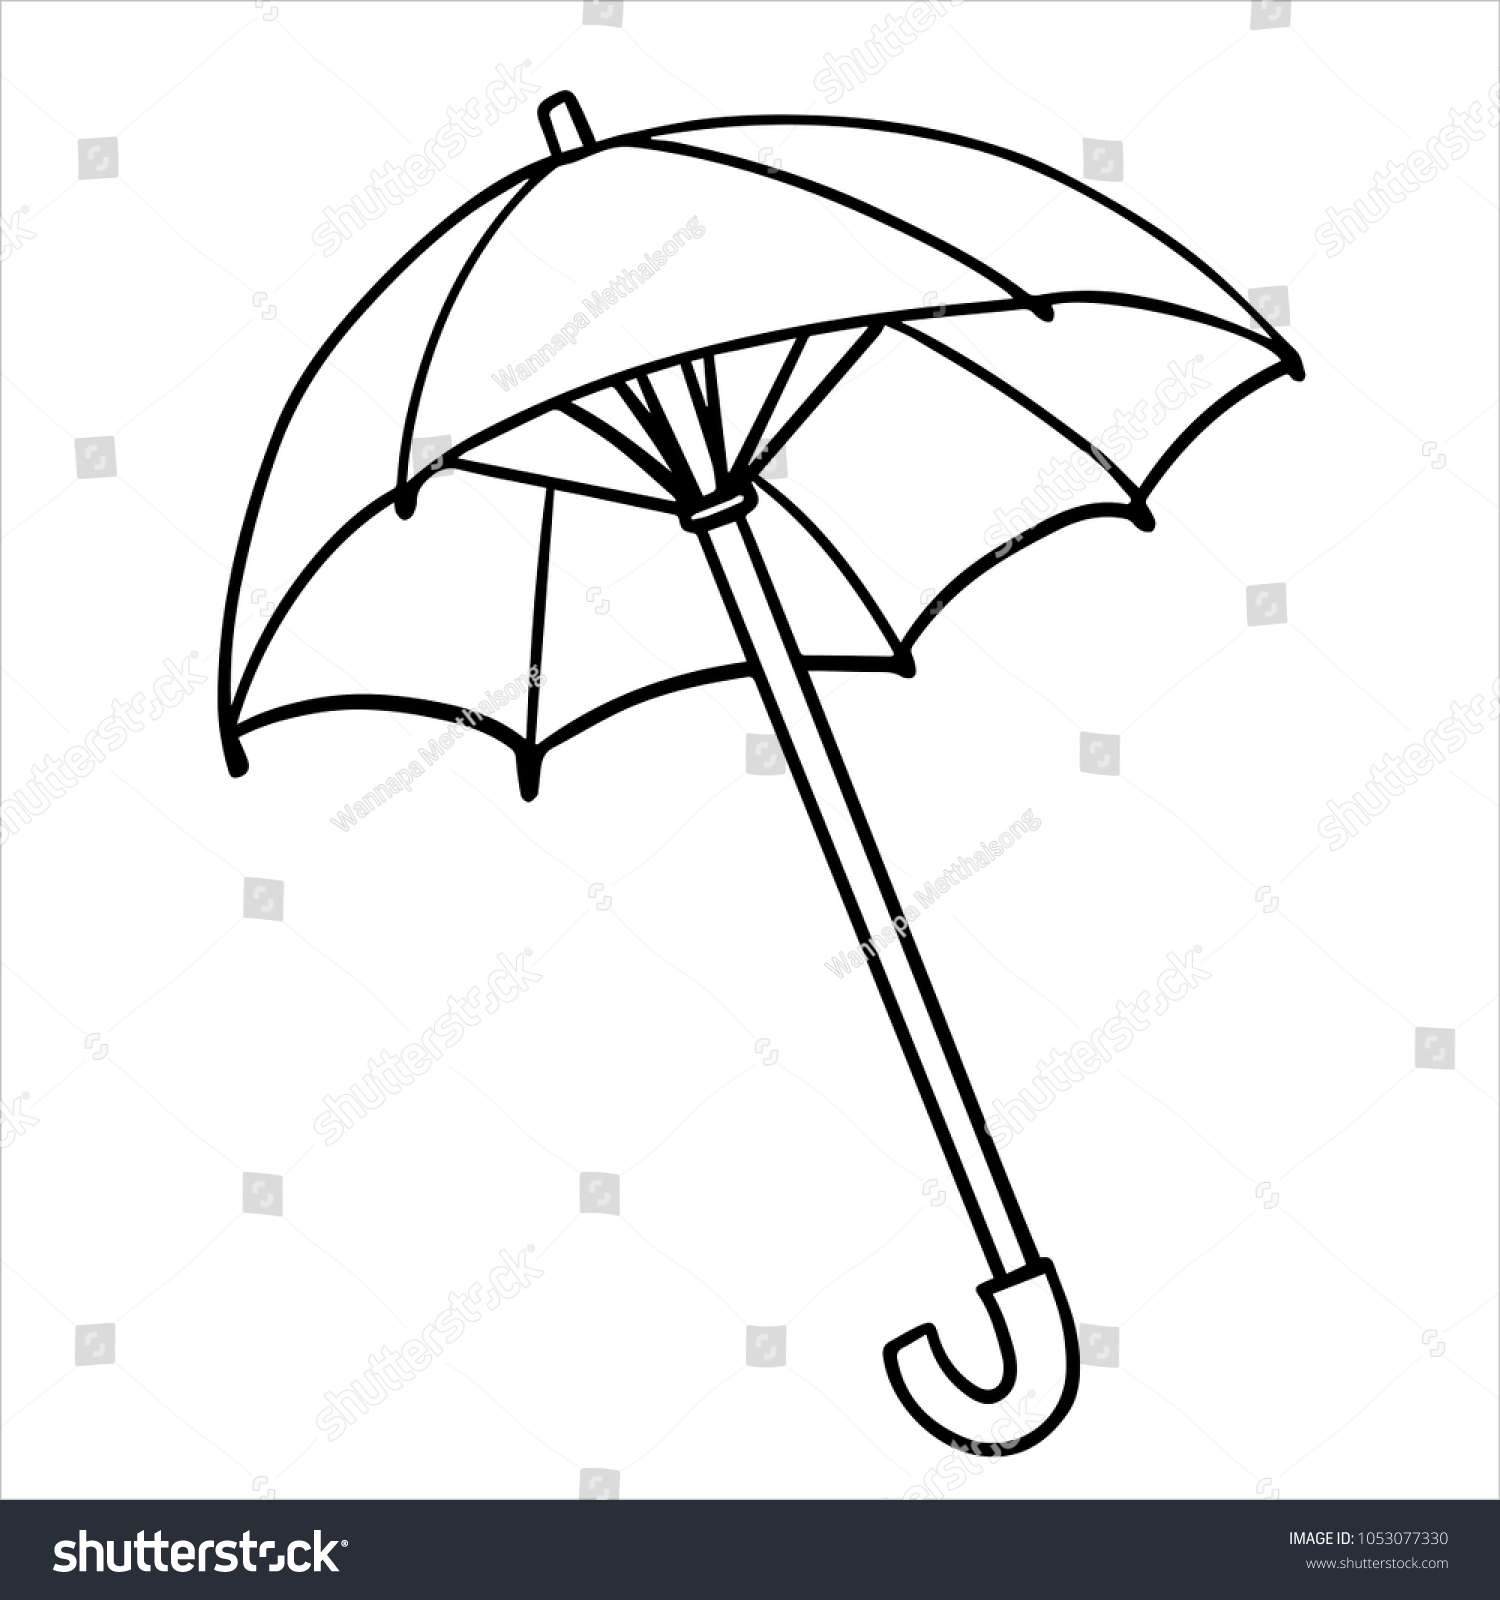 Kids Coloring Pages Umbrella Stock Vector (Royalty Free) 1053077330 ...